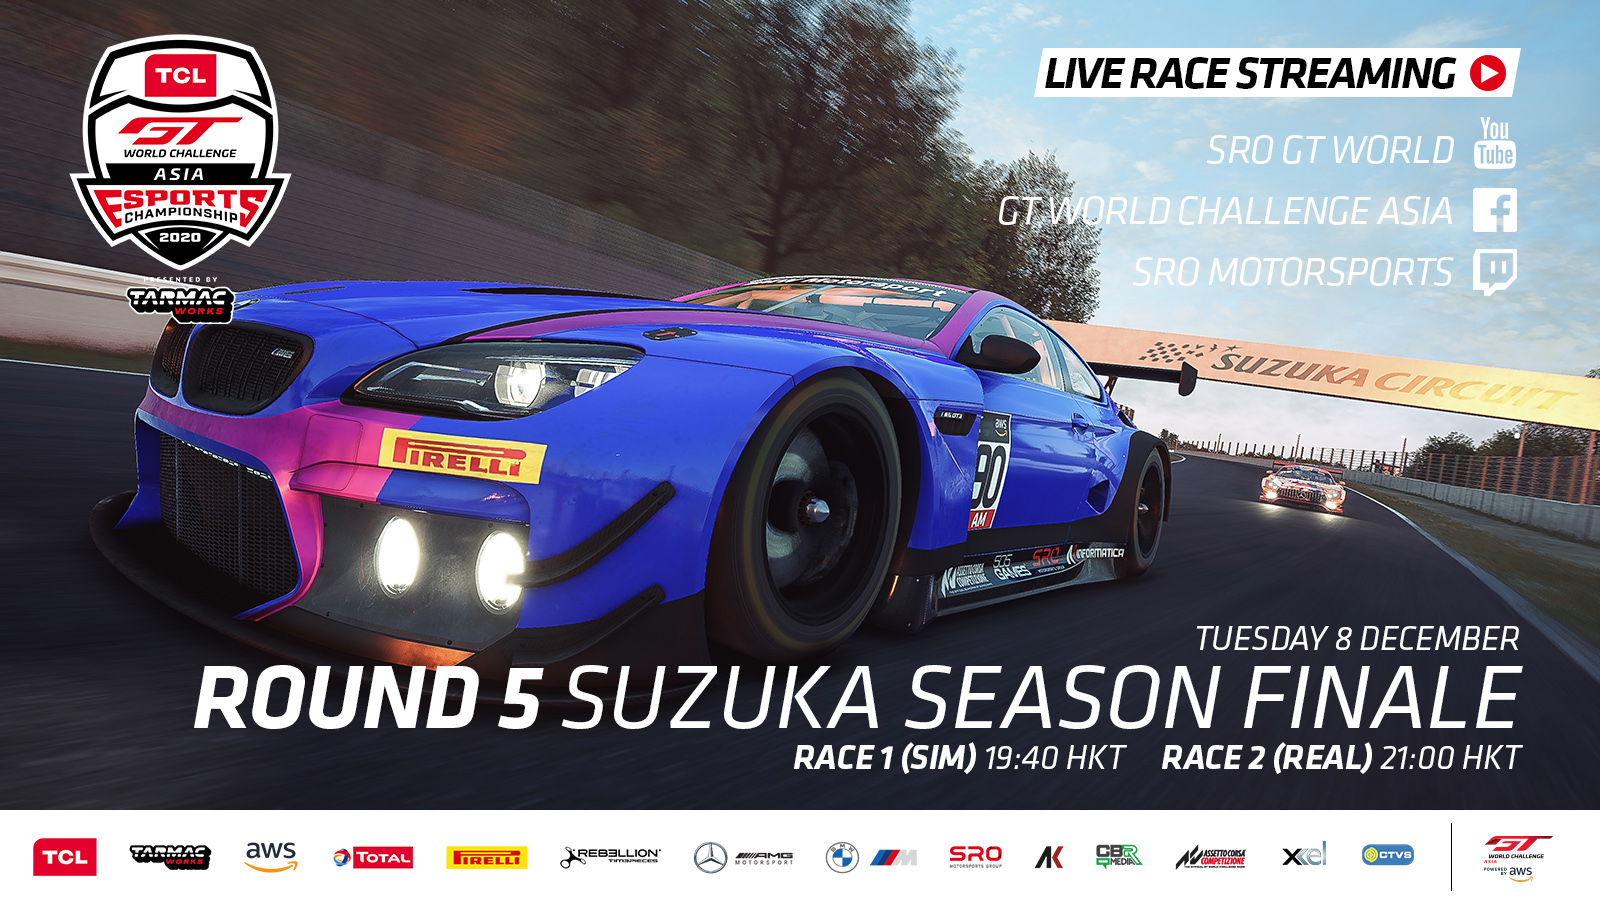 Stage set for TCL GT World Challenge Asia Esports Presented by Tarmac Works showdown at Suzuka